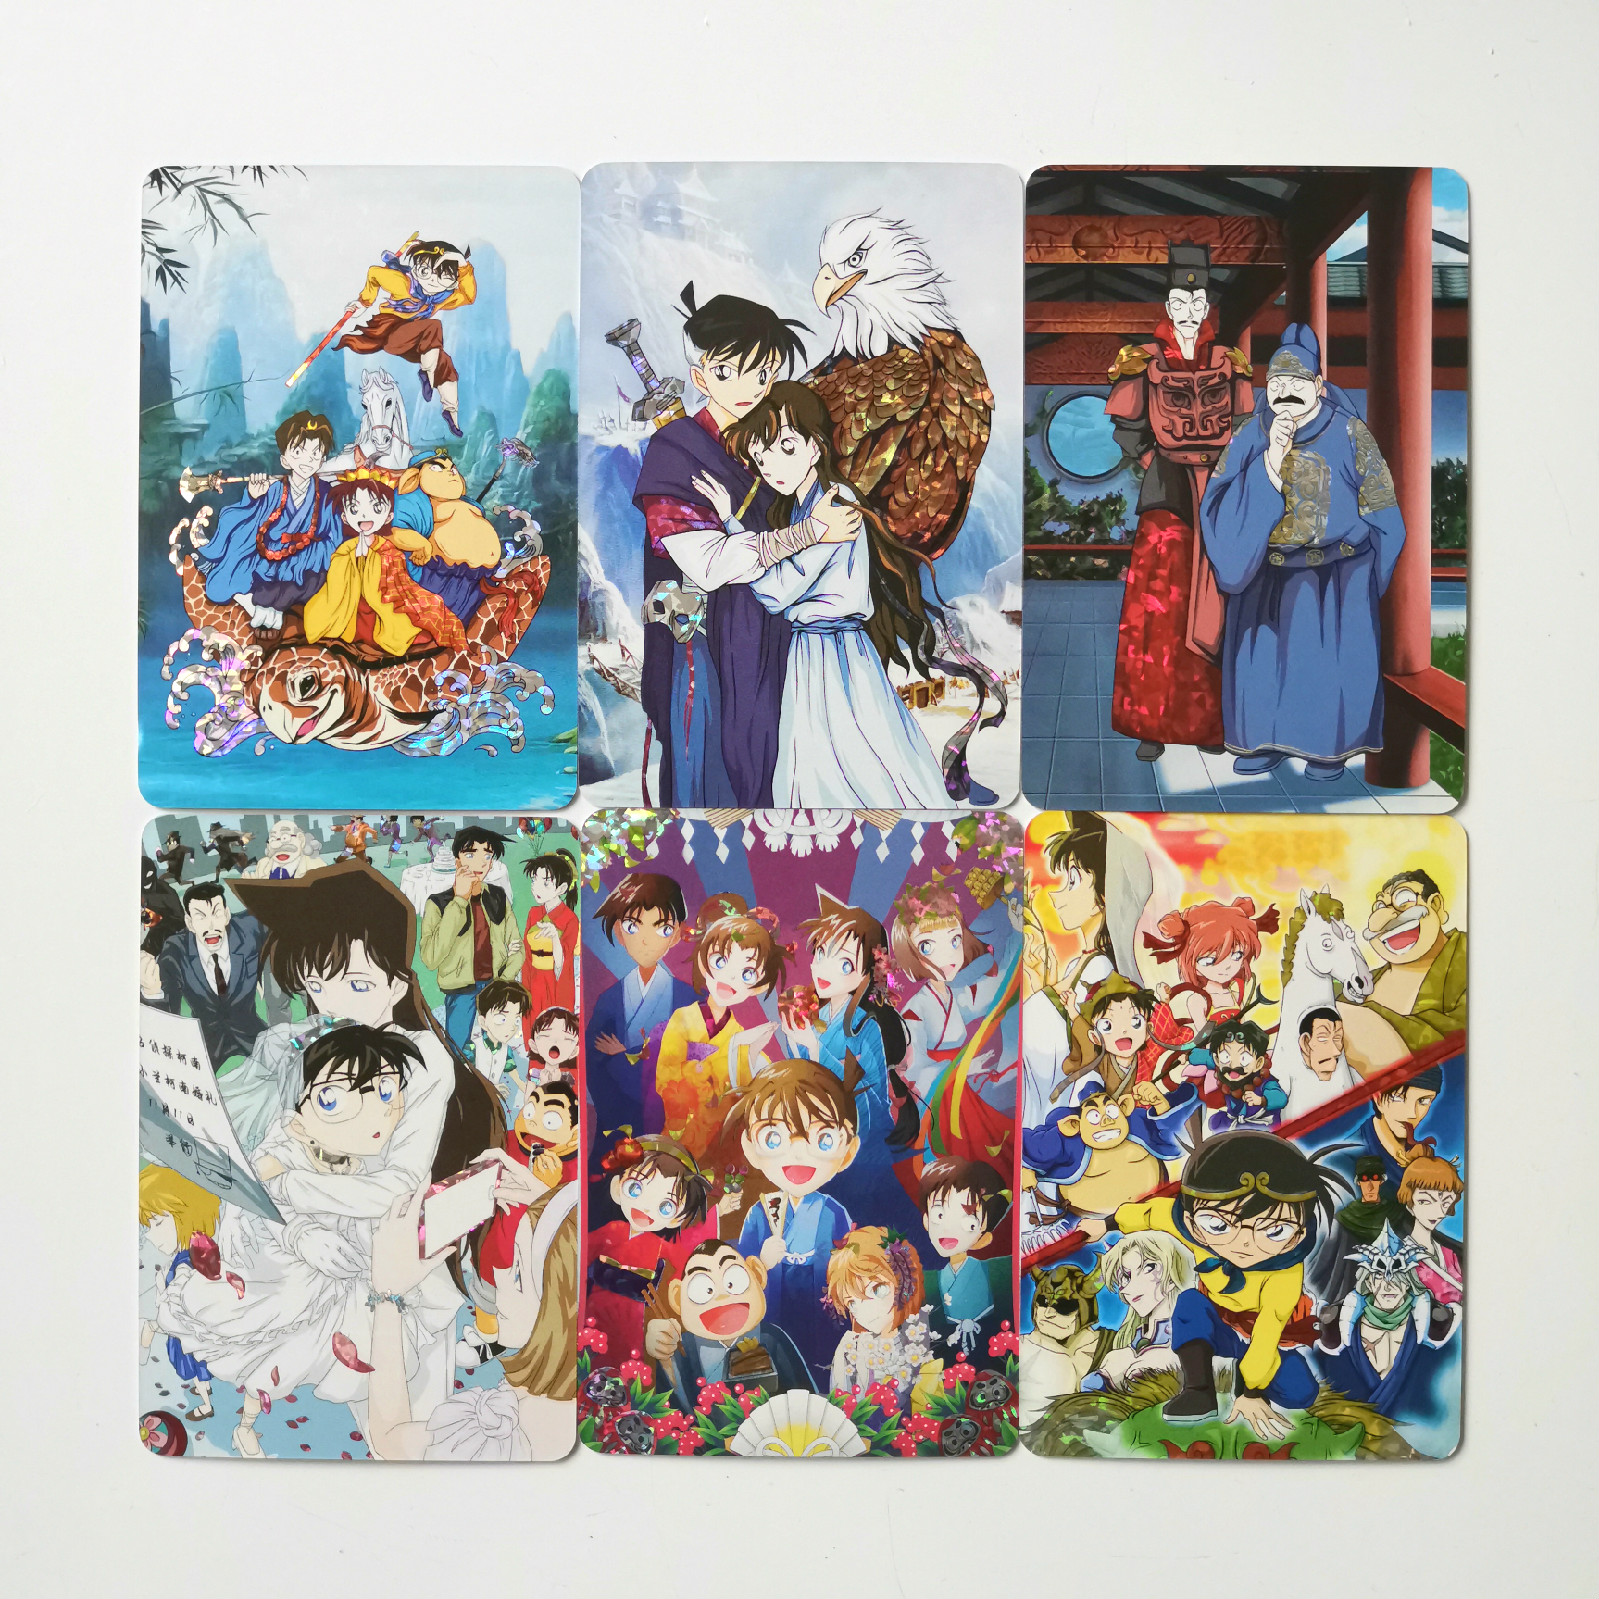 9pcs/set Detective Conan Case Closed Chinese Elements Toys Hobbies Hobby Collectibles Game Collection Anime Cards